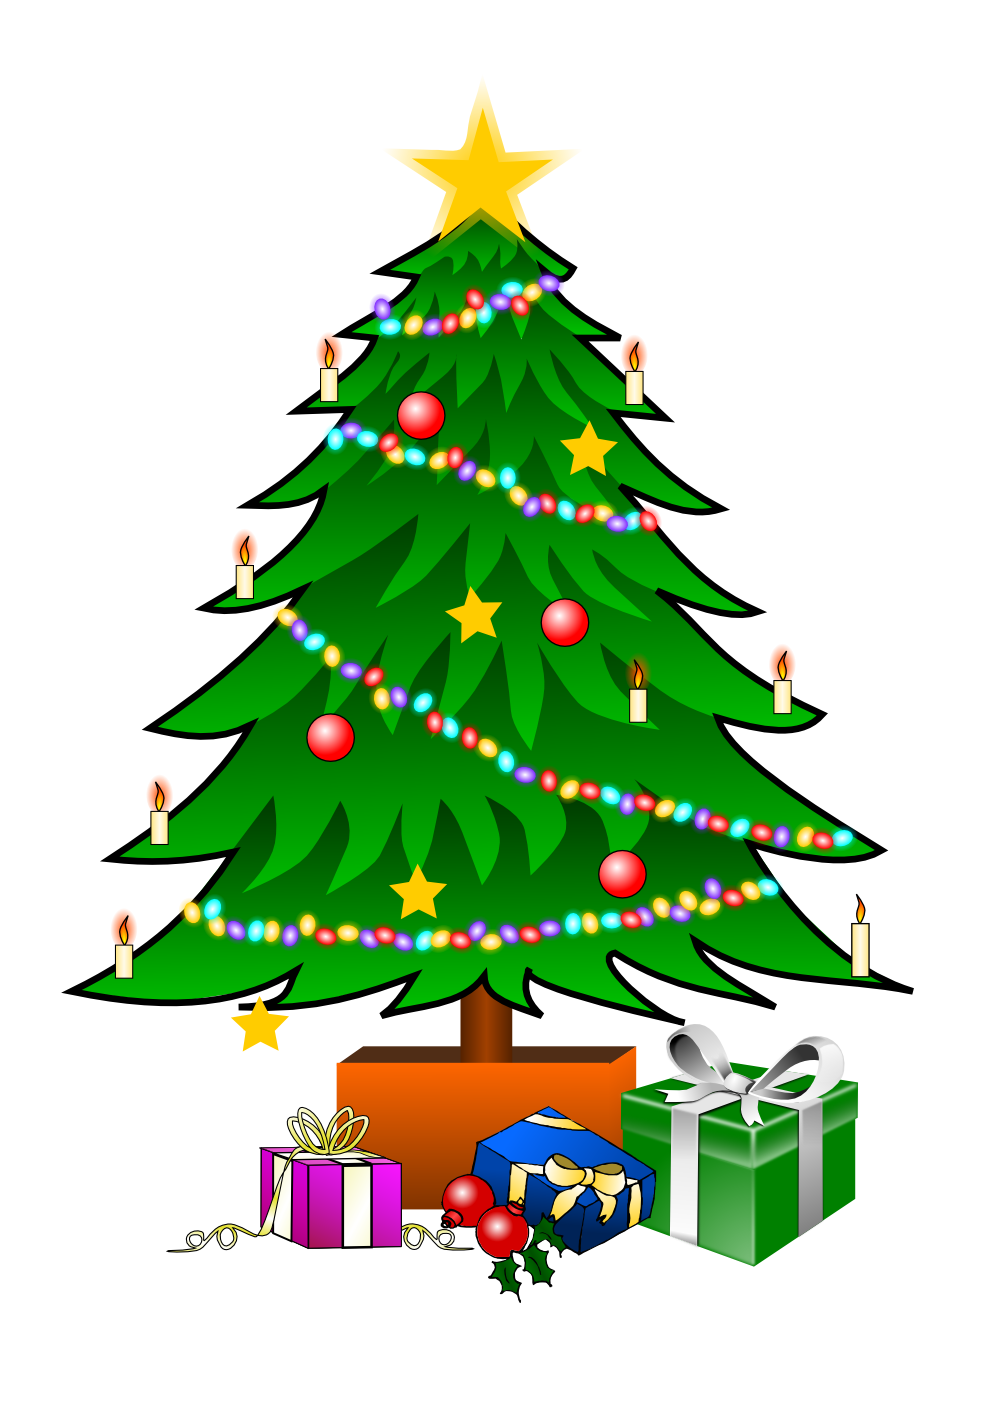 Christmas Tree Decorating Clipart - Clipart Suggest